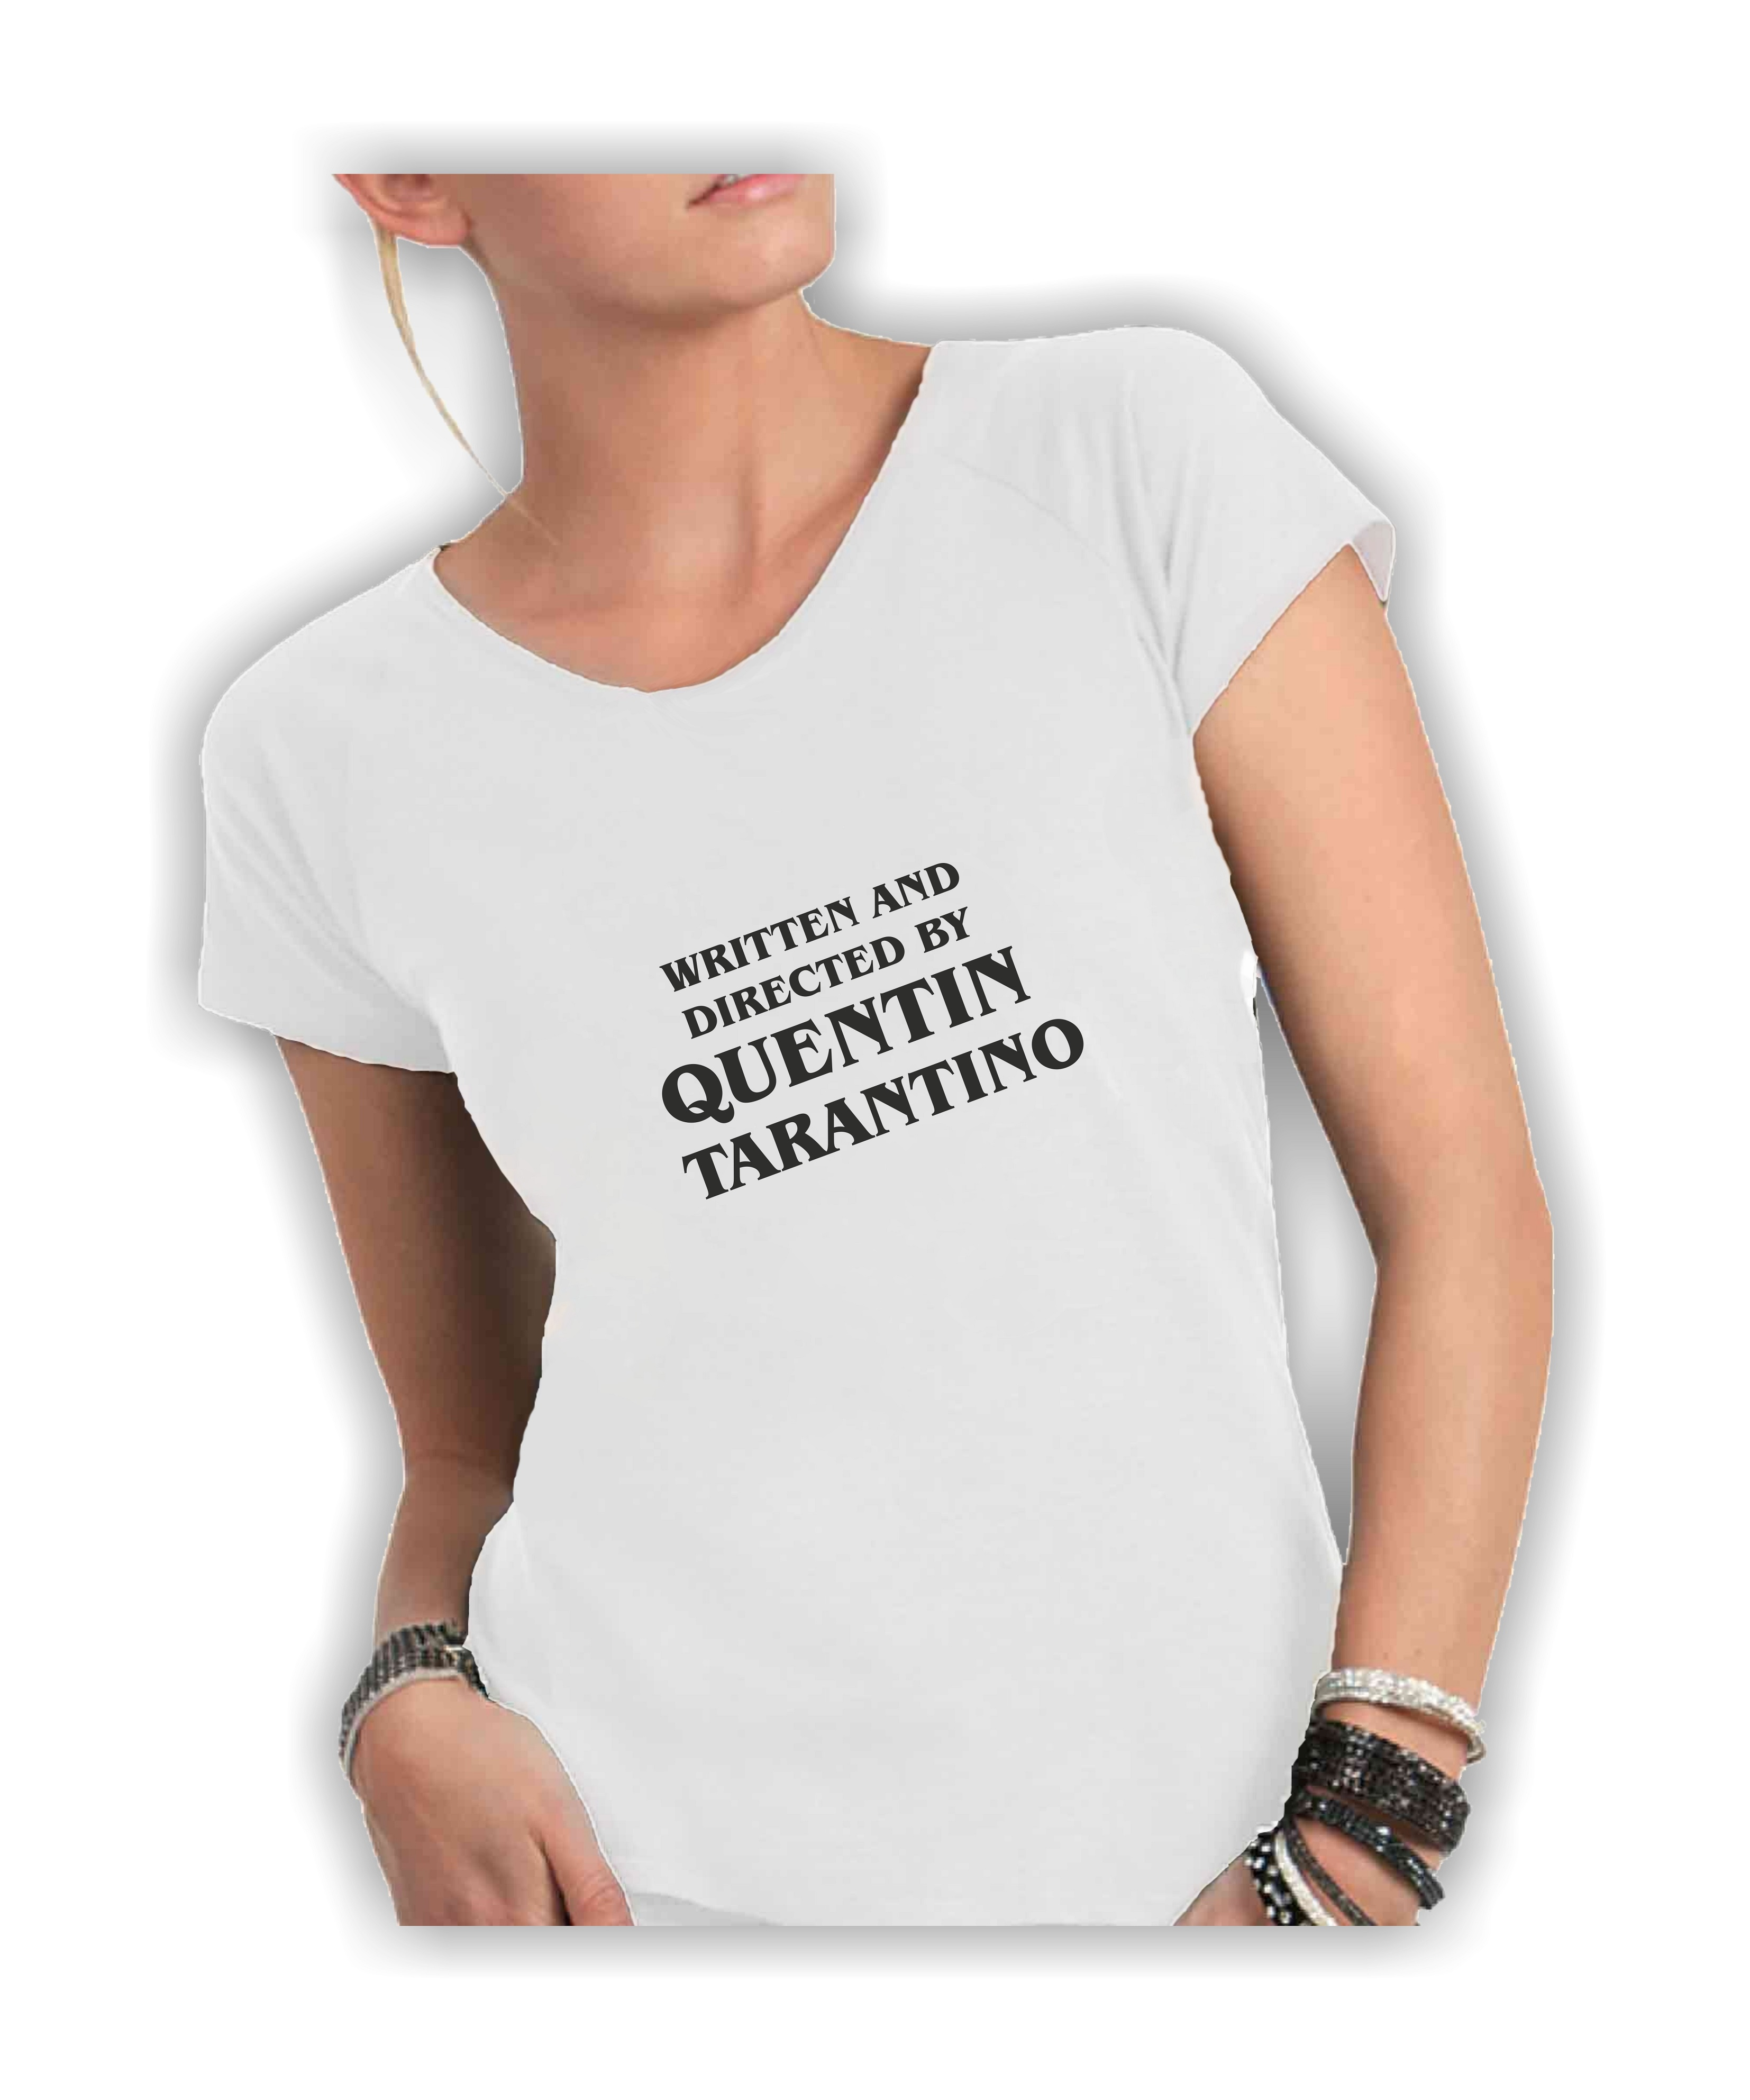 t-shirt-woman-cotton-flamed-with-wide-neckline-and-cutting-vivo-neckline-and-sleeves-direct-by-quentin-font-b-tarantino-b-font-made-in-italy